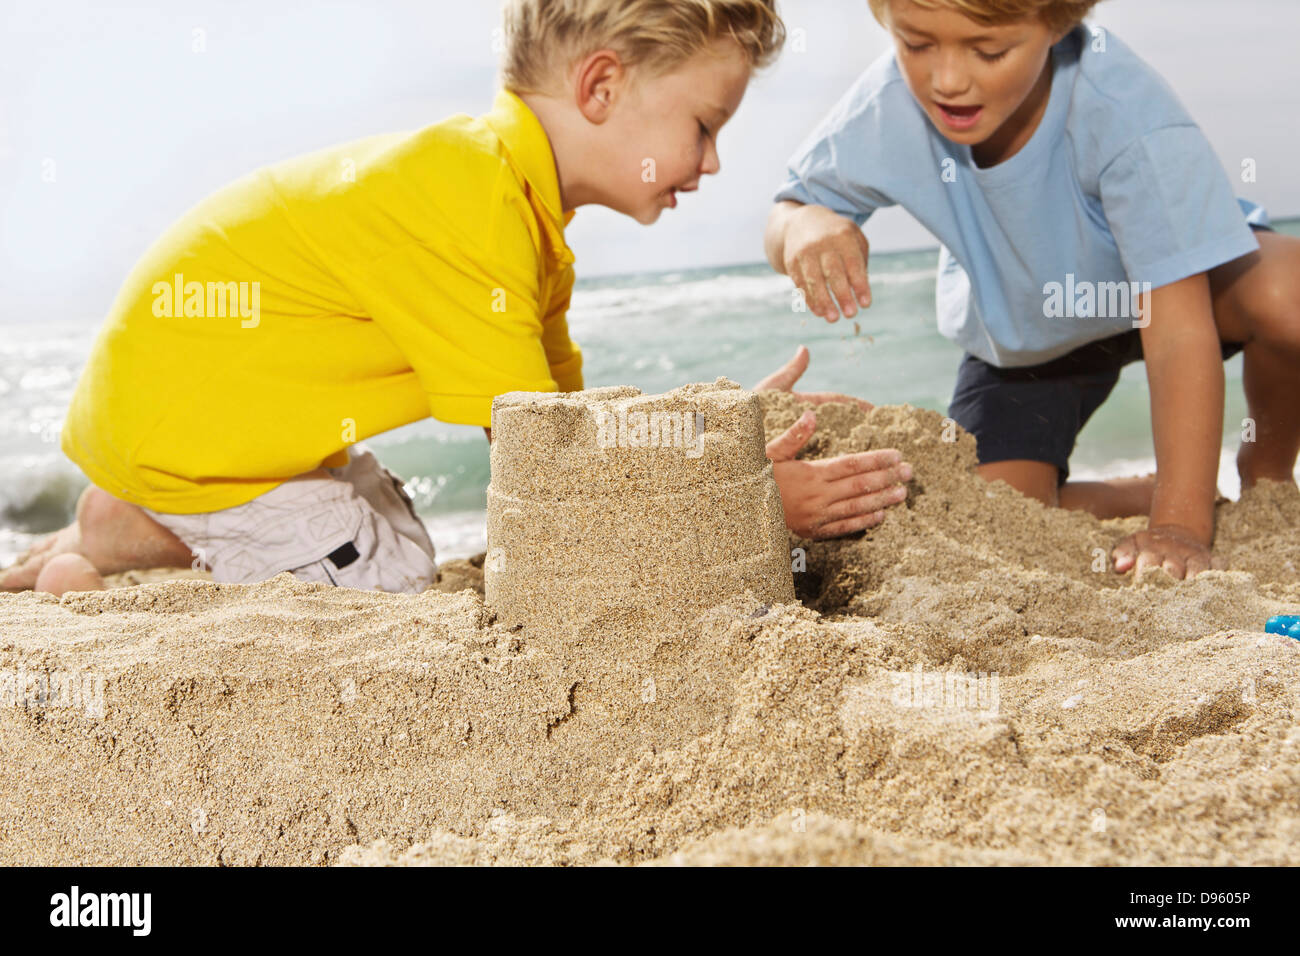 Boys Playing On Beach At Palma De Mallorca High Resolution Stock Photography And Images Alamy